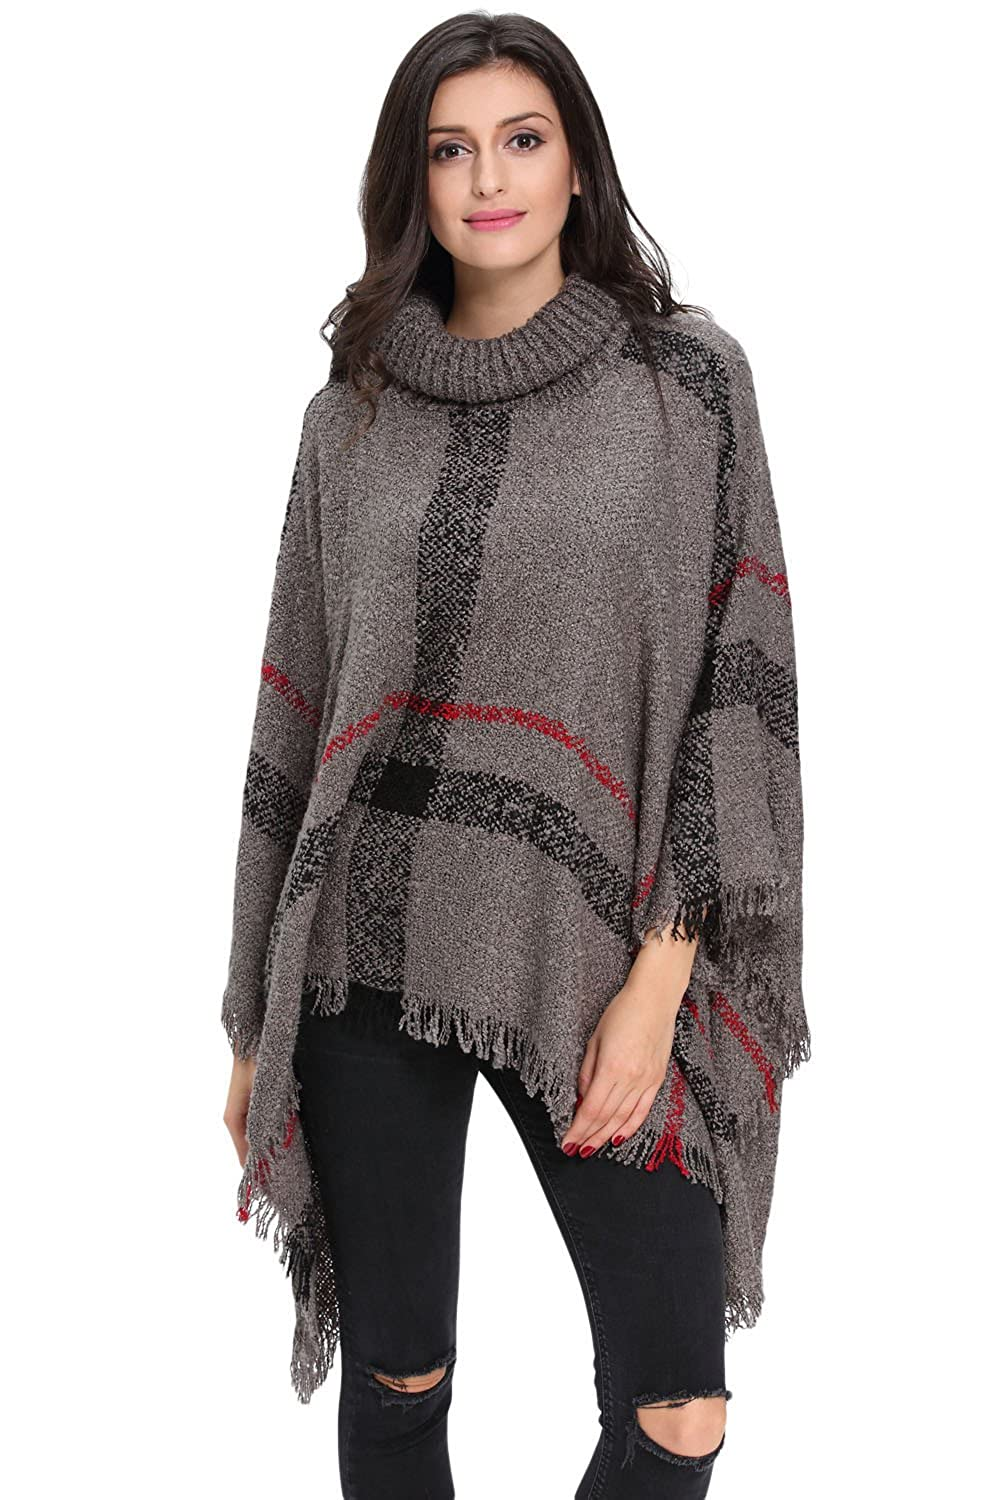 HY Women Plaid Batwing Knit Poncho Turtleneck Cape Sweater Cloak Pullover Gray